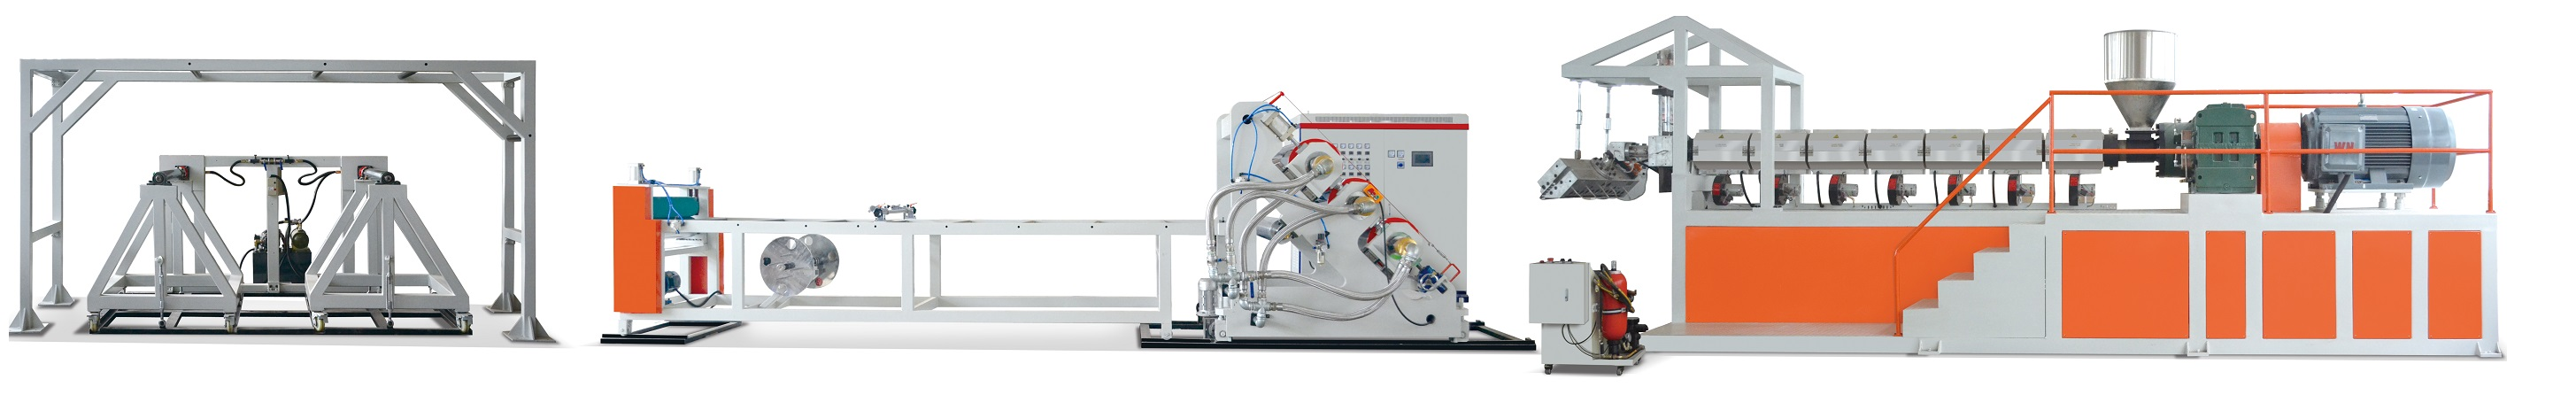 PP PS sheet extrusion line.jpg